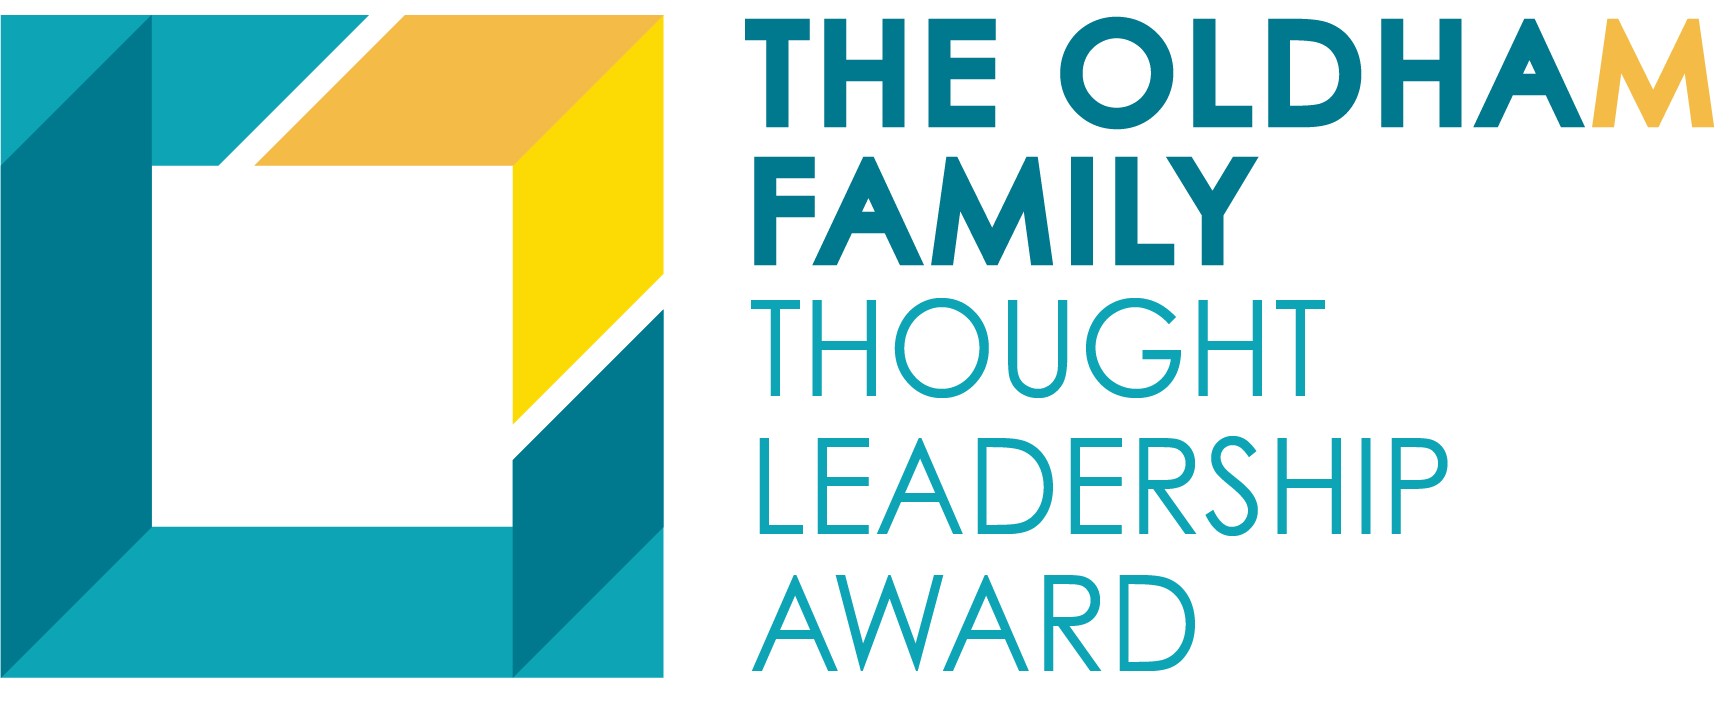 Oldham Family Thought Leadership Award - Honors individual or organizational excellence and leadership in the innovation and transformation of health, education or economic empowerment in the United States.